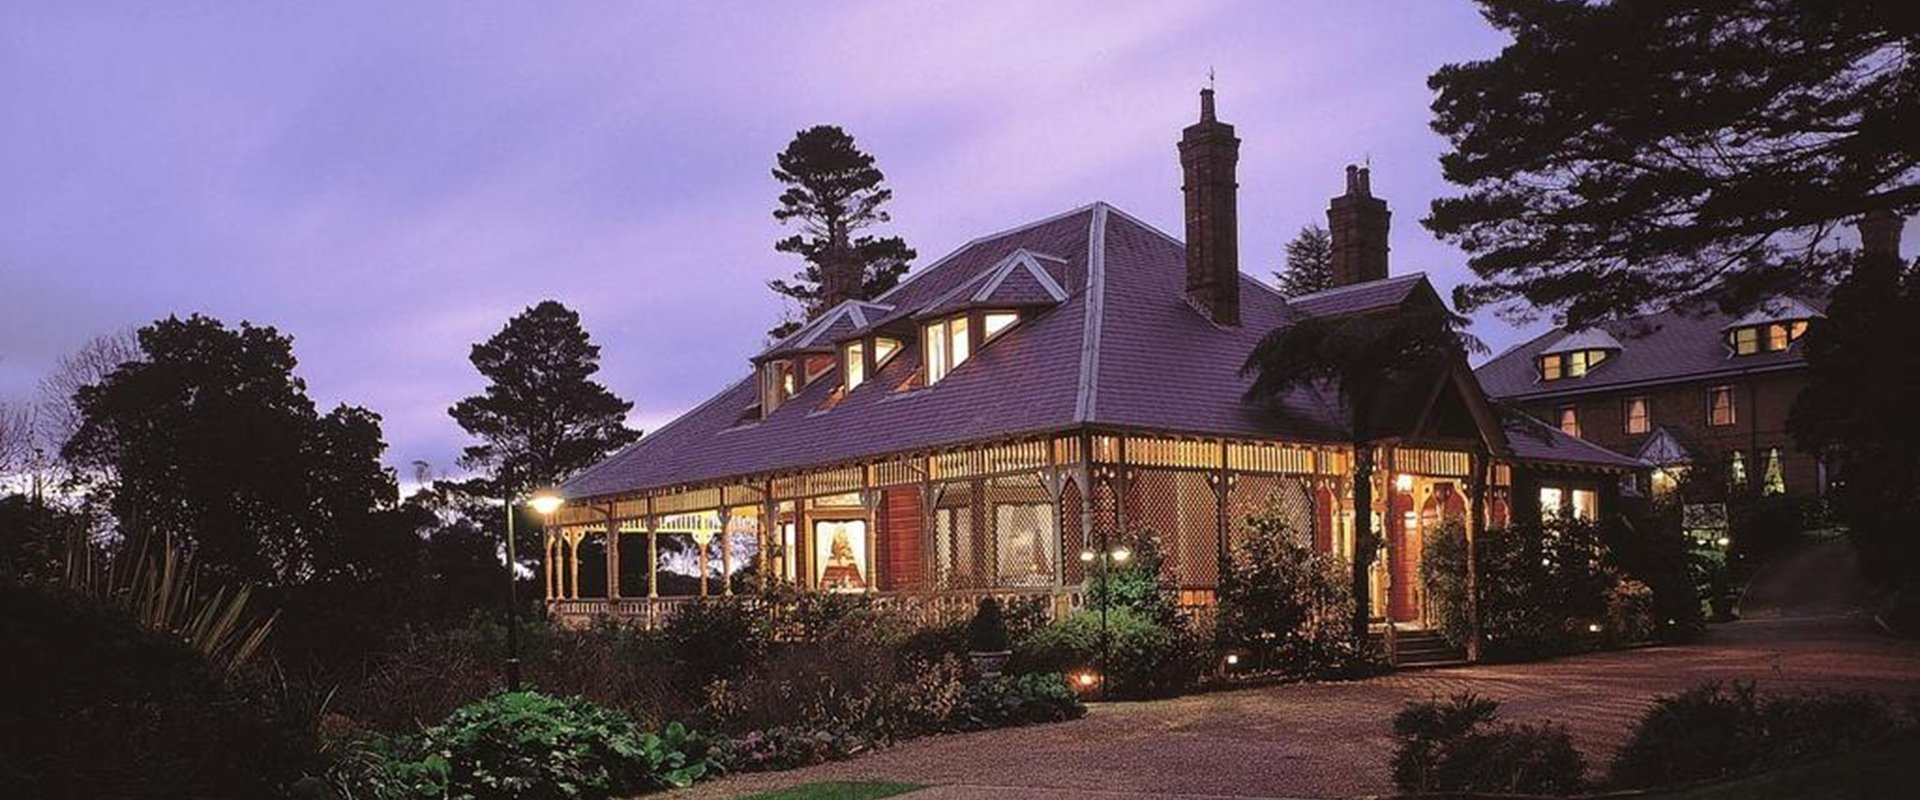 Lilianfels Resort & Spa | Conference Venues Blue Mountains | Conference Venues New South Wales